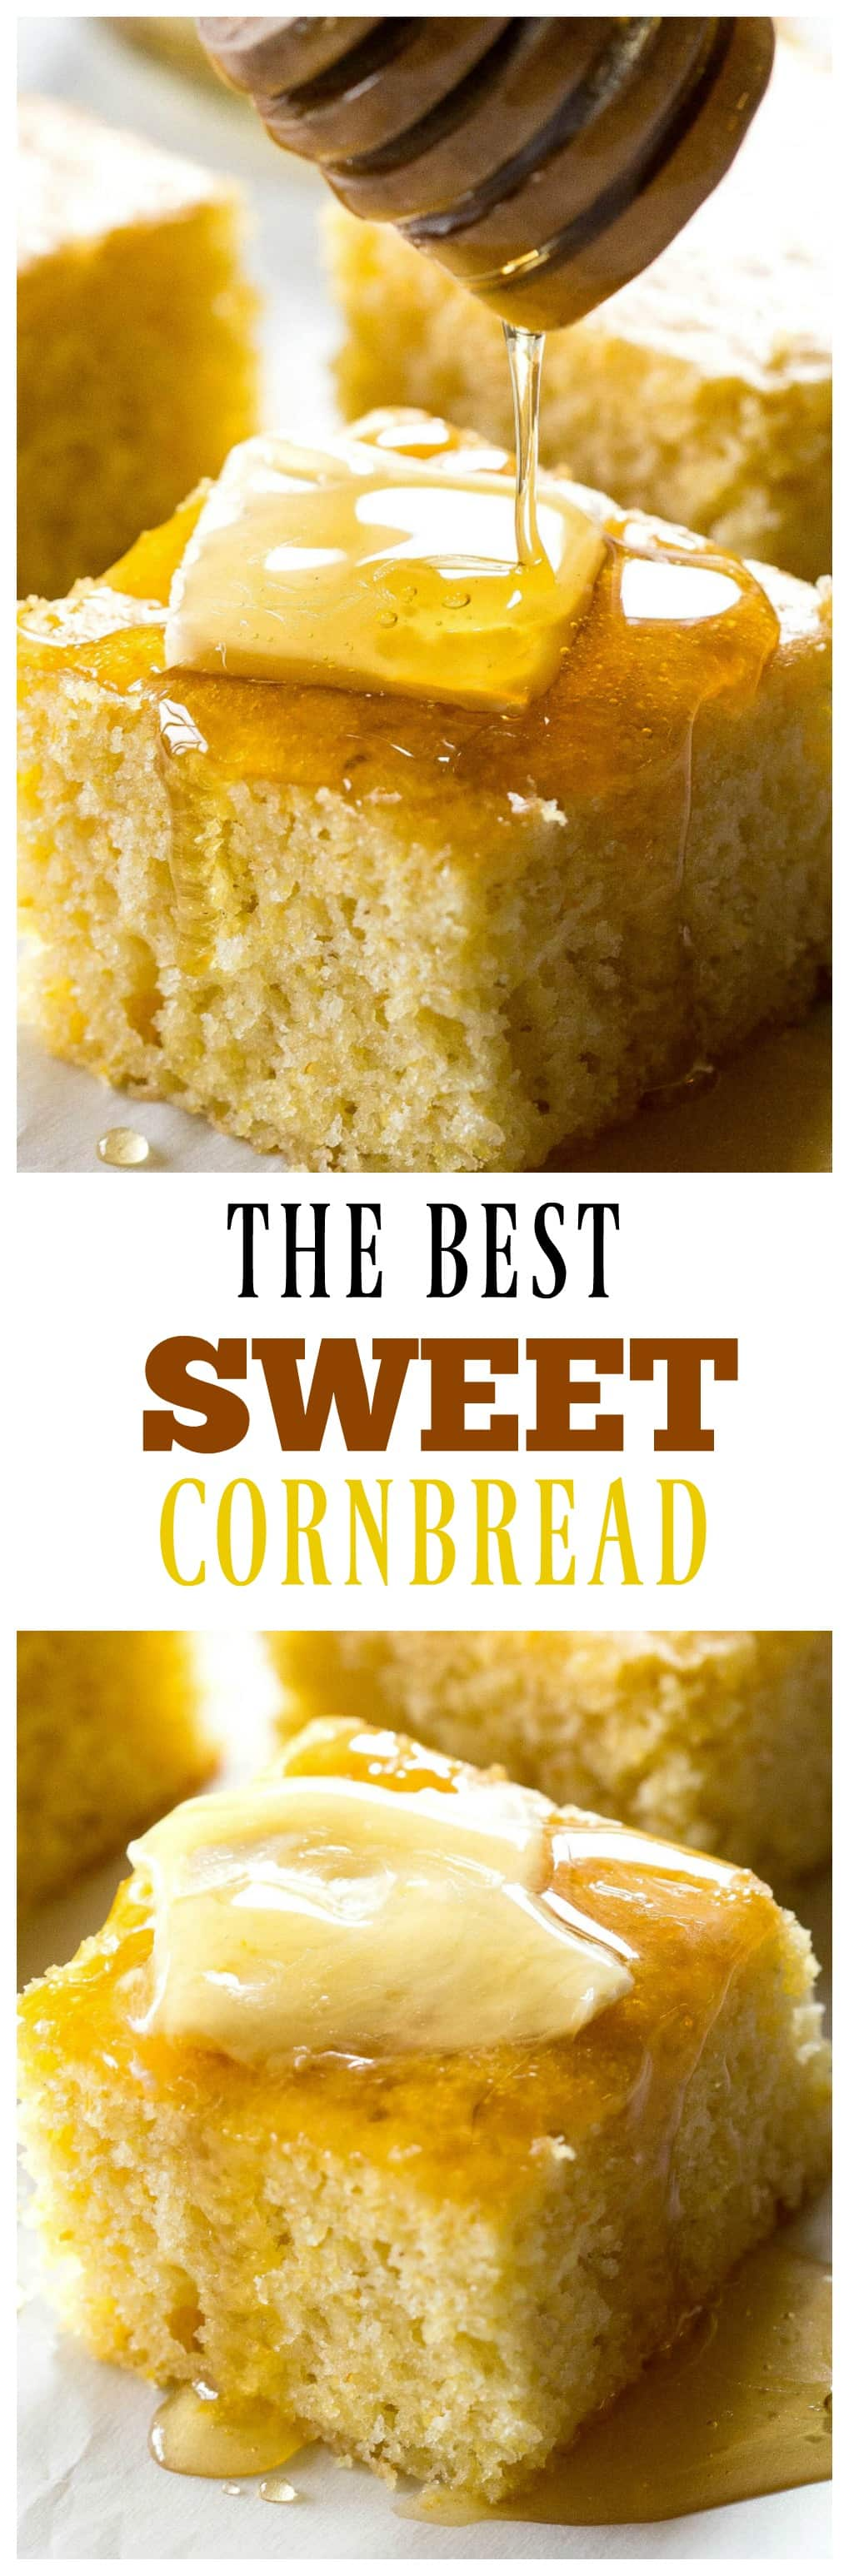 The Best Sweet Cornbread - soft, tender cornbread that's sweet just like I like it. #sweet #cornbread #recipe #easy #chili #side